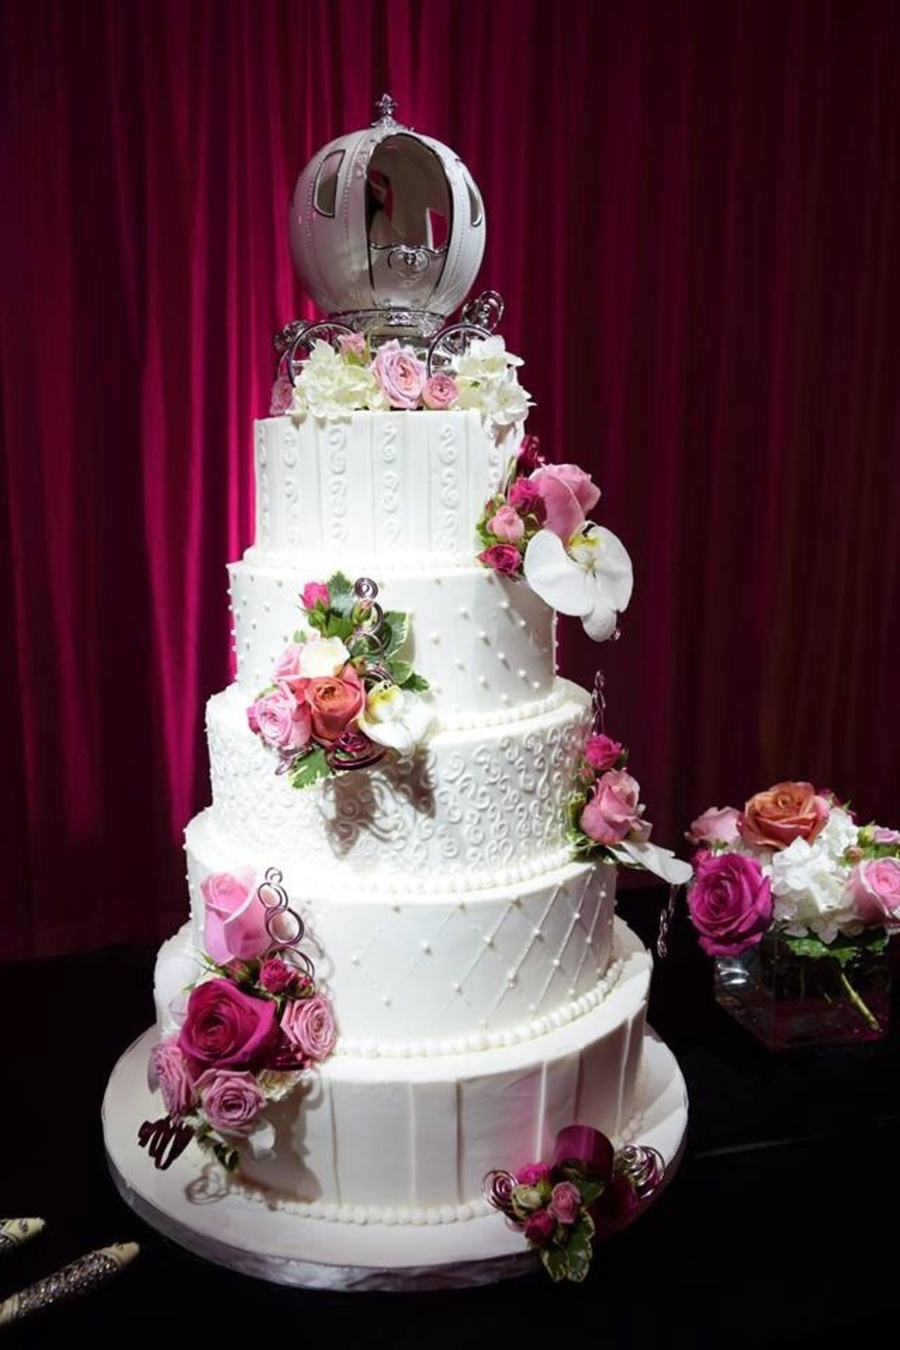 Traditional 5 Tier Buttercream Wedding Cake On Central